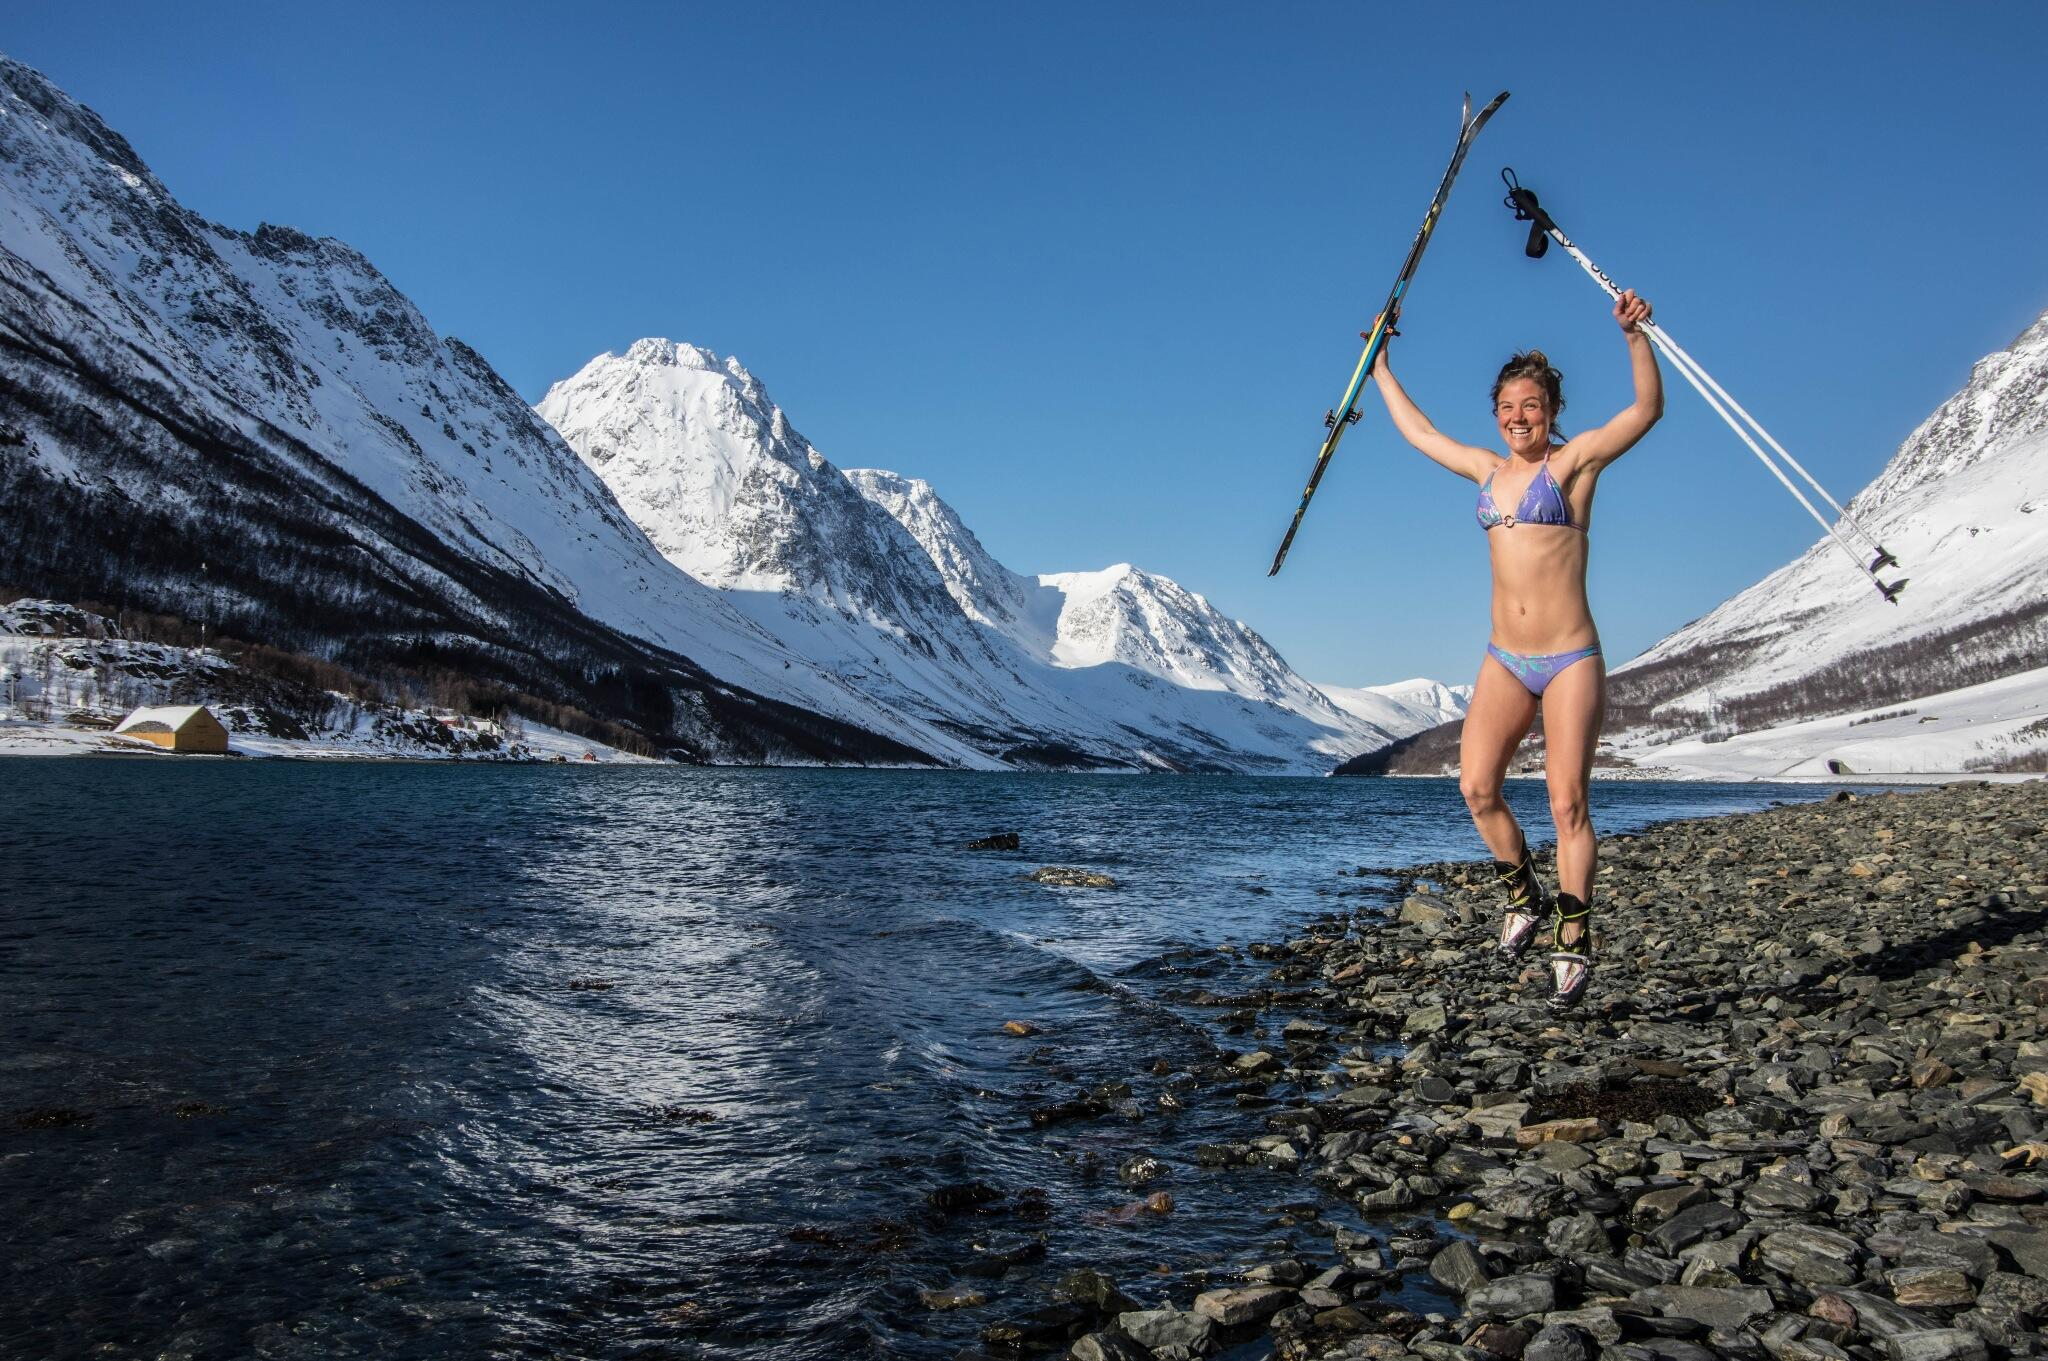 RT @TinaEmelie: It is spring! From summit to sea in #Lyngen ! http://t.co/fS9sIdJ0zt